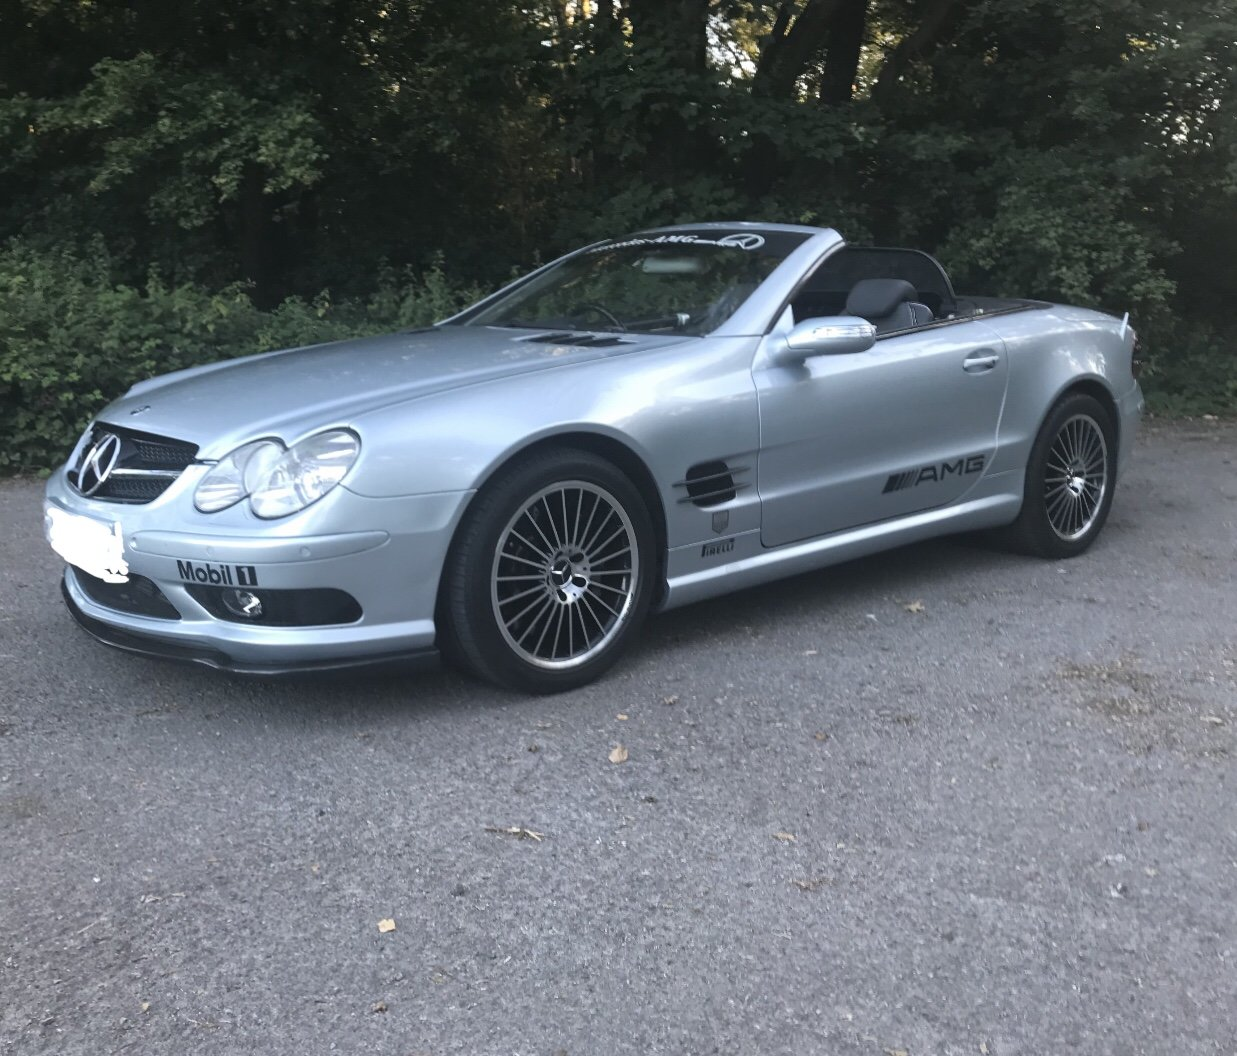 2004 550 bhp Mercedes Supercharged V8 SL55 AMG For Sale (picture 4 of 6)